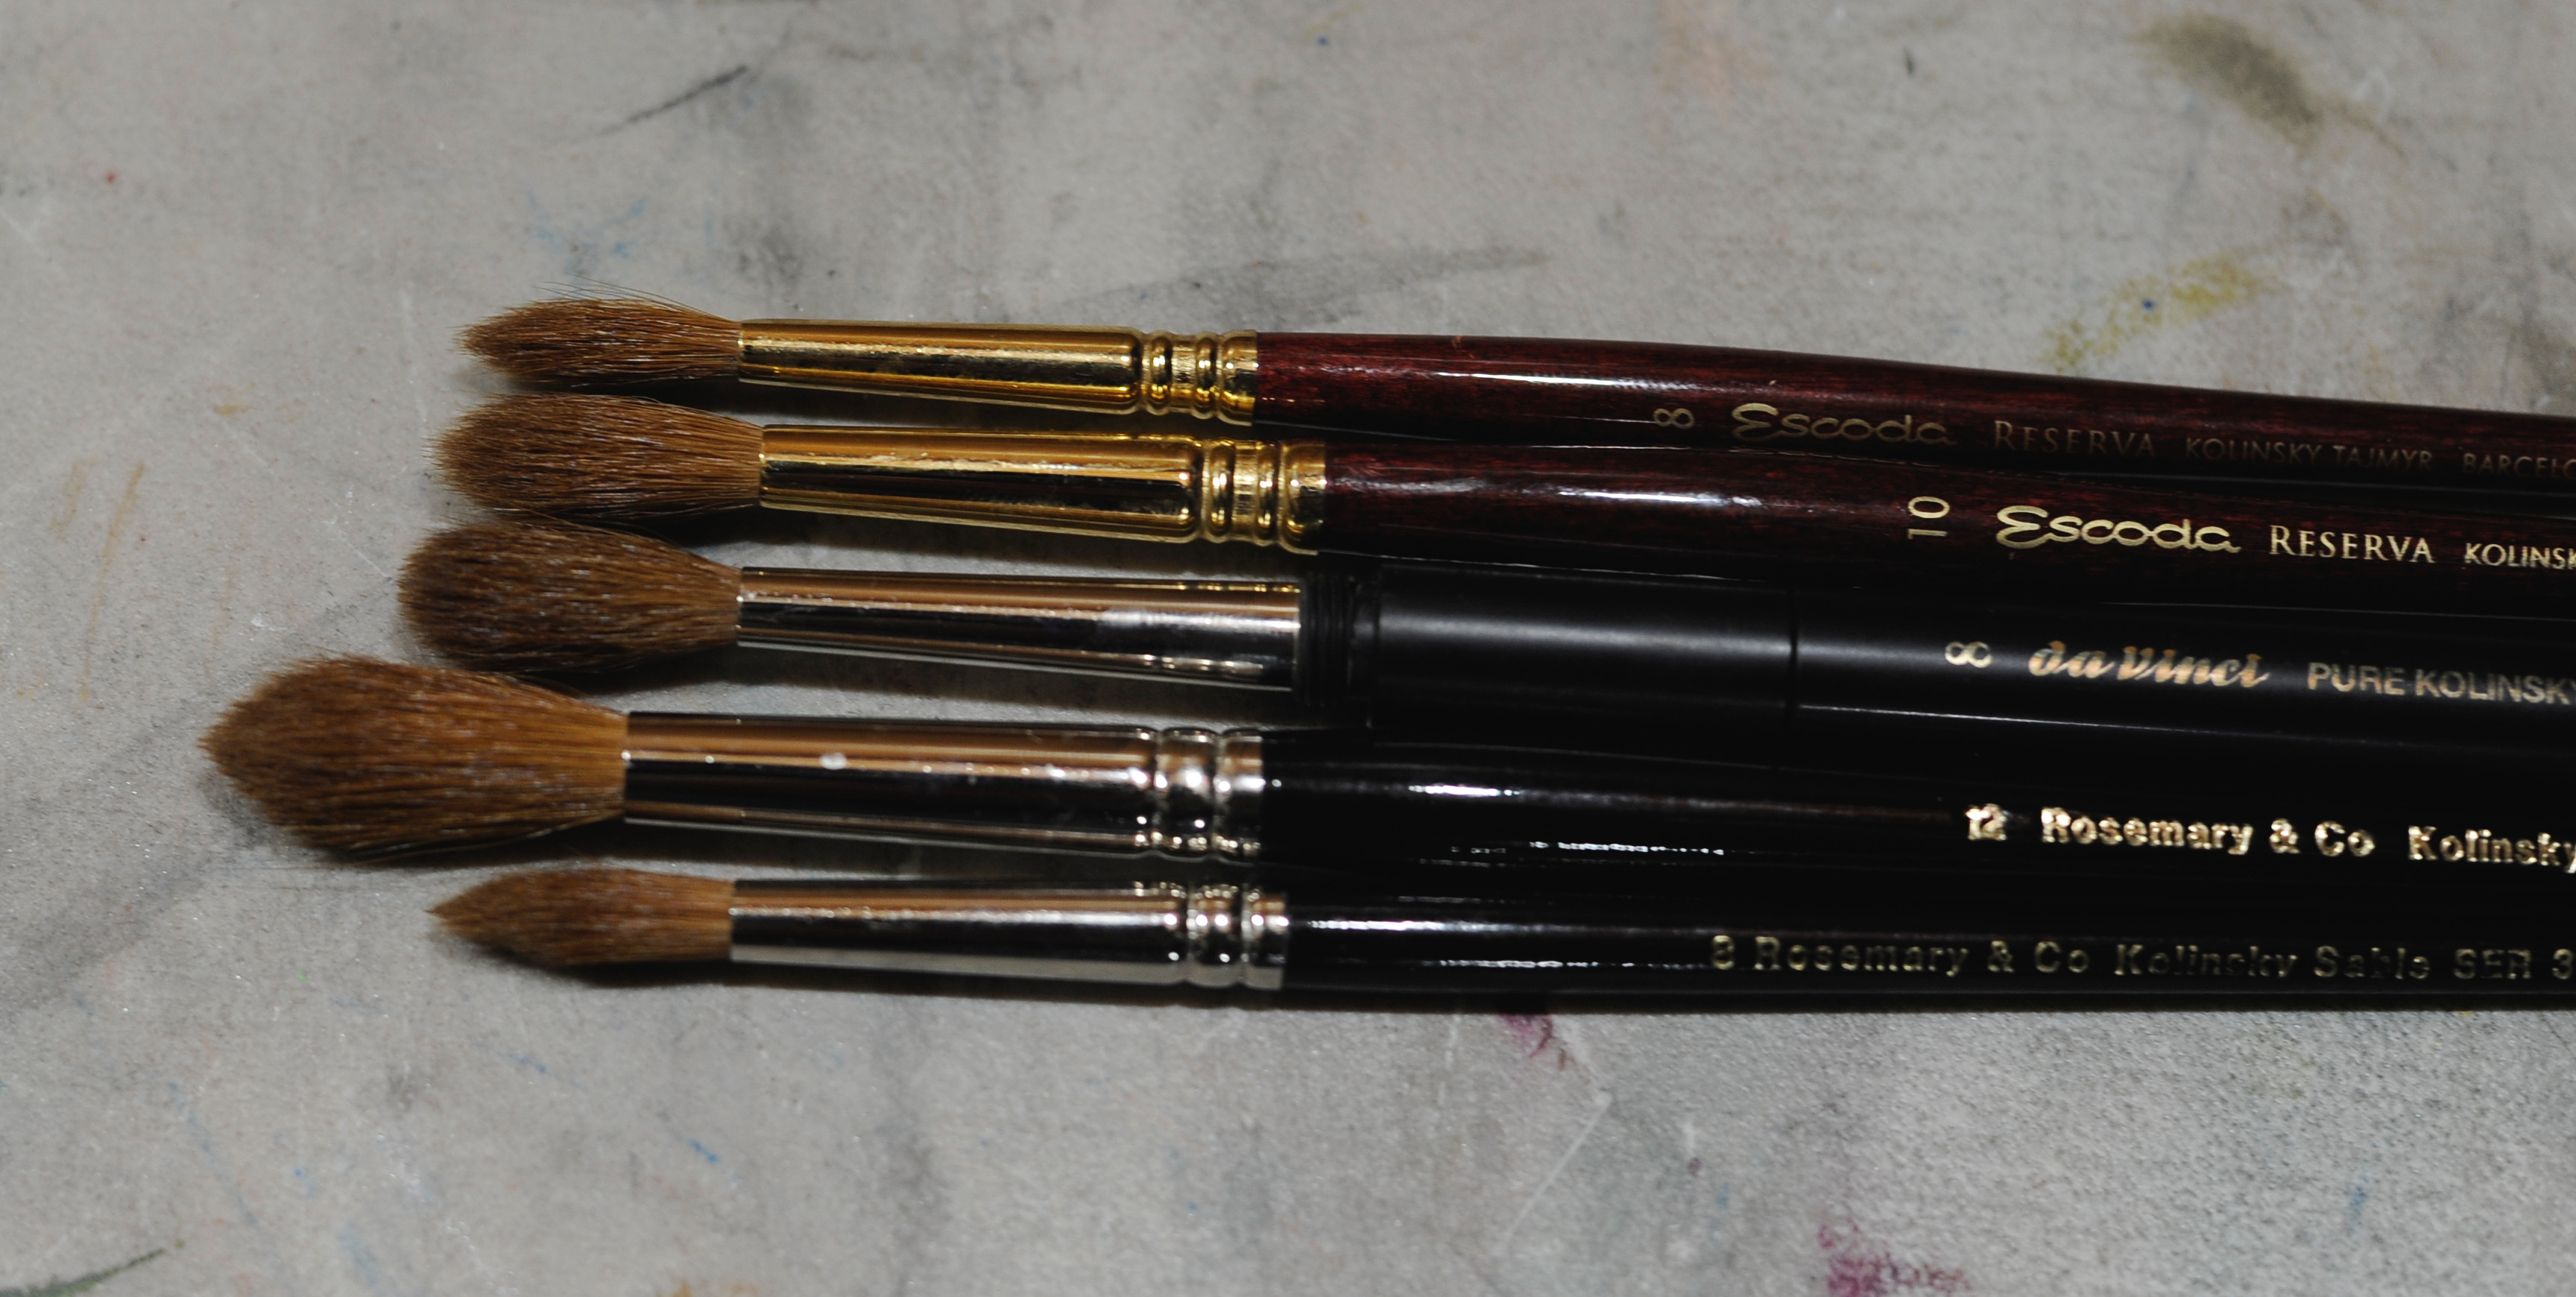 Dry brushes for comparison: Escoda Reserva size 8, Escoda Reserva size 10, Da Vinci 1503 size 8, Rosemary and Co series 33 size 12, Rosemary and Co series 33 size 8